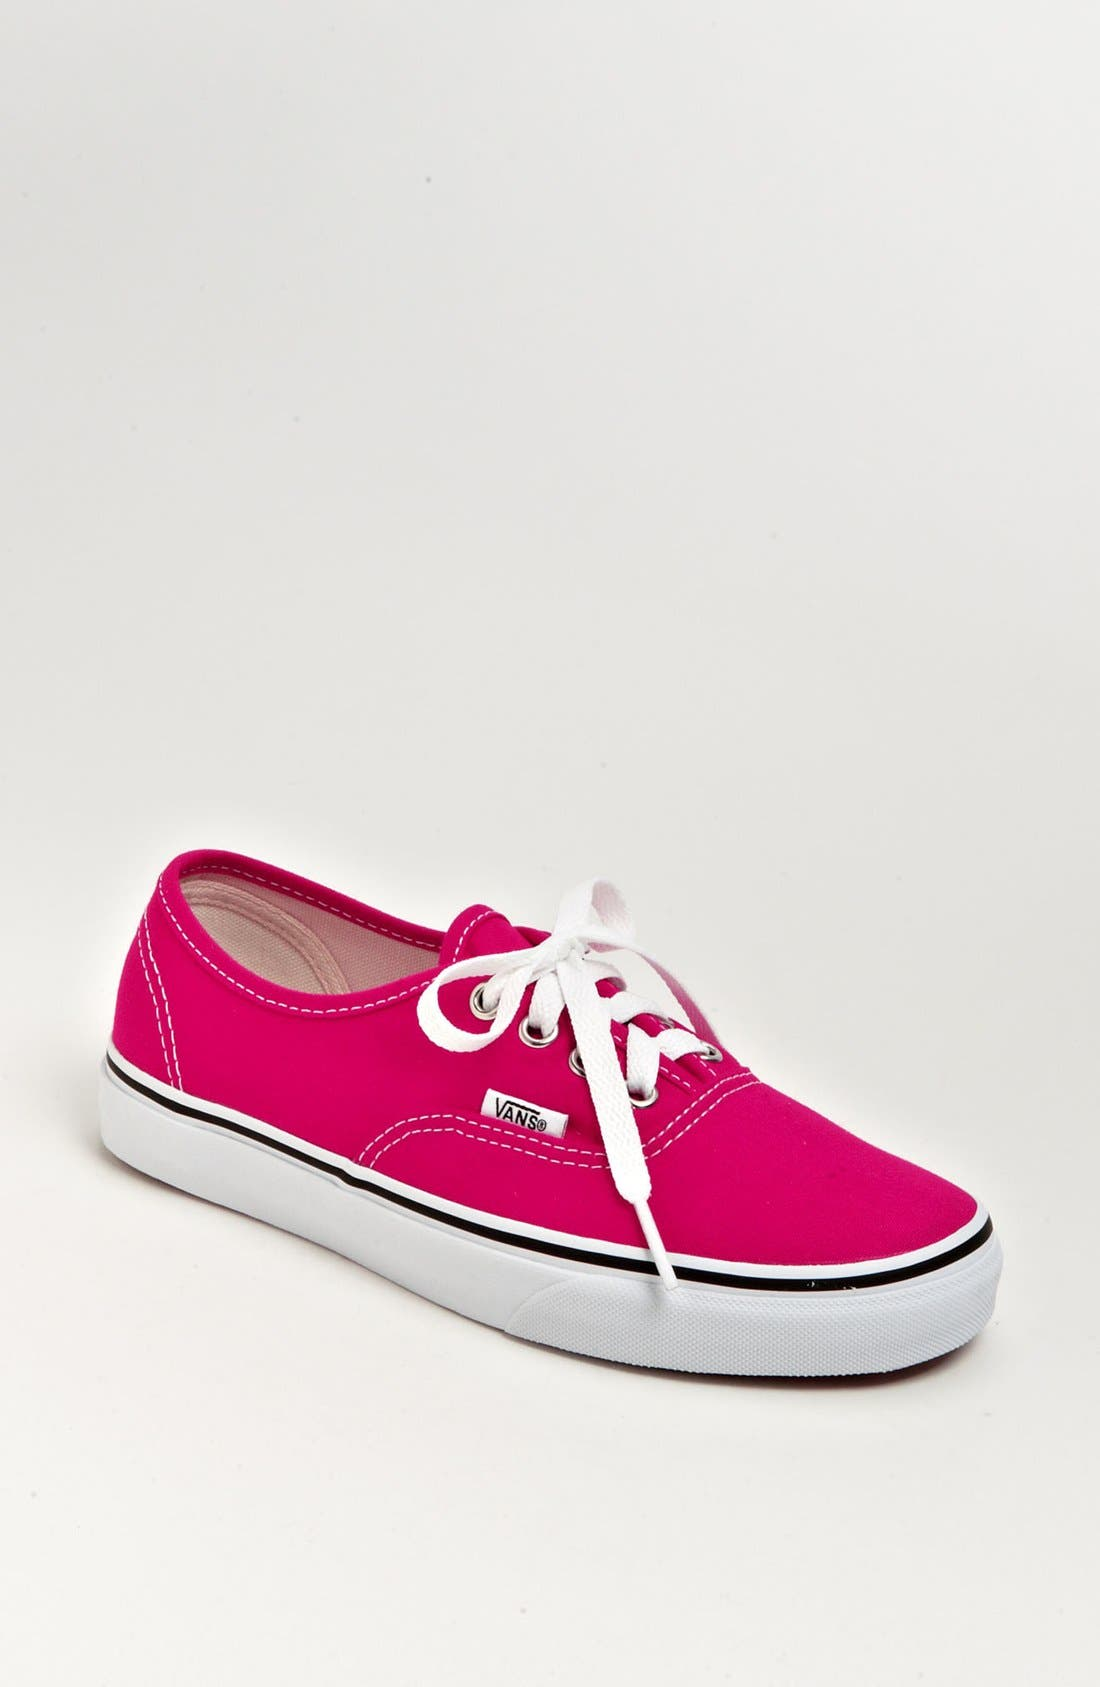 Main Image - Vans 'Authentic' Sneaker (Women)